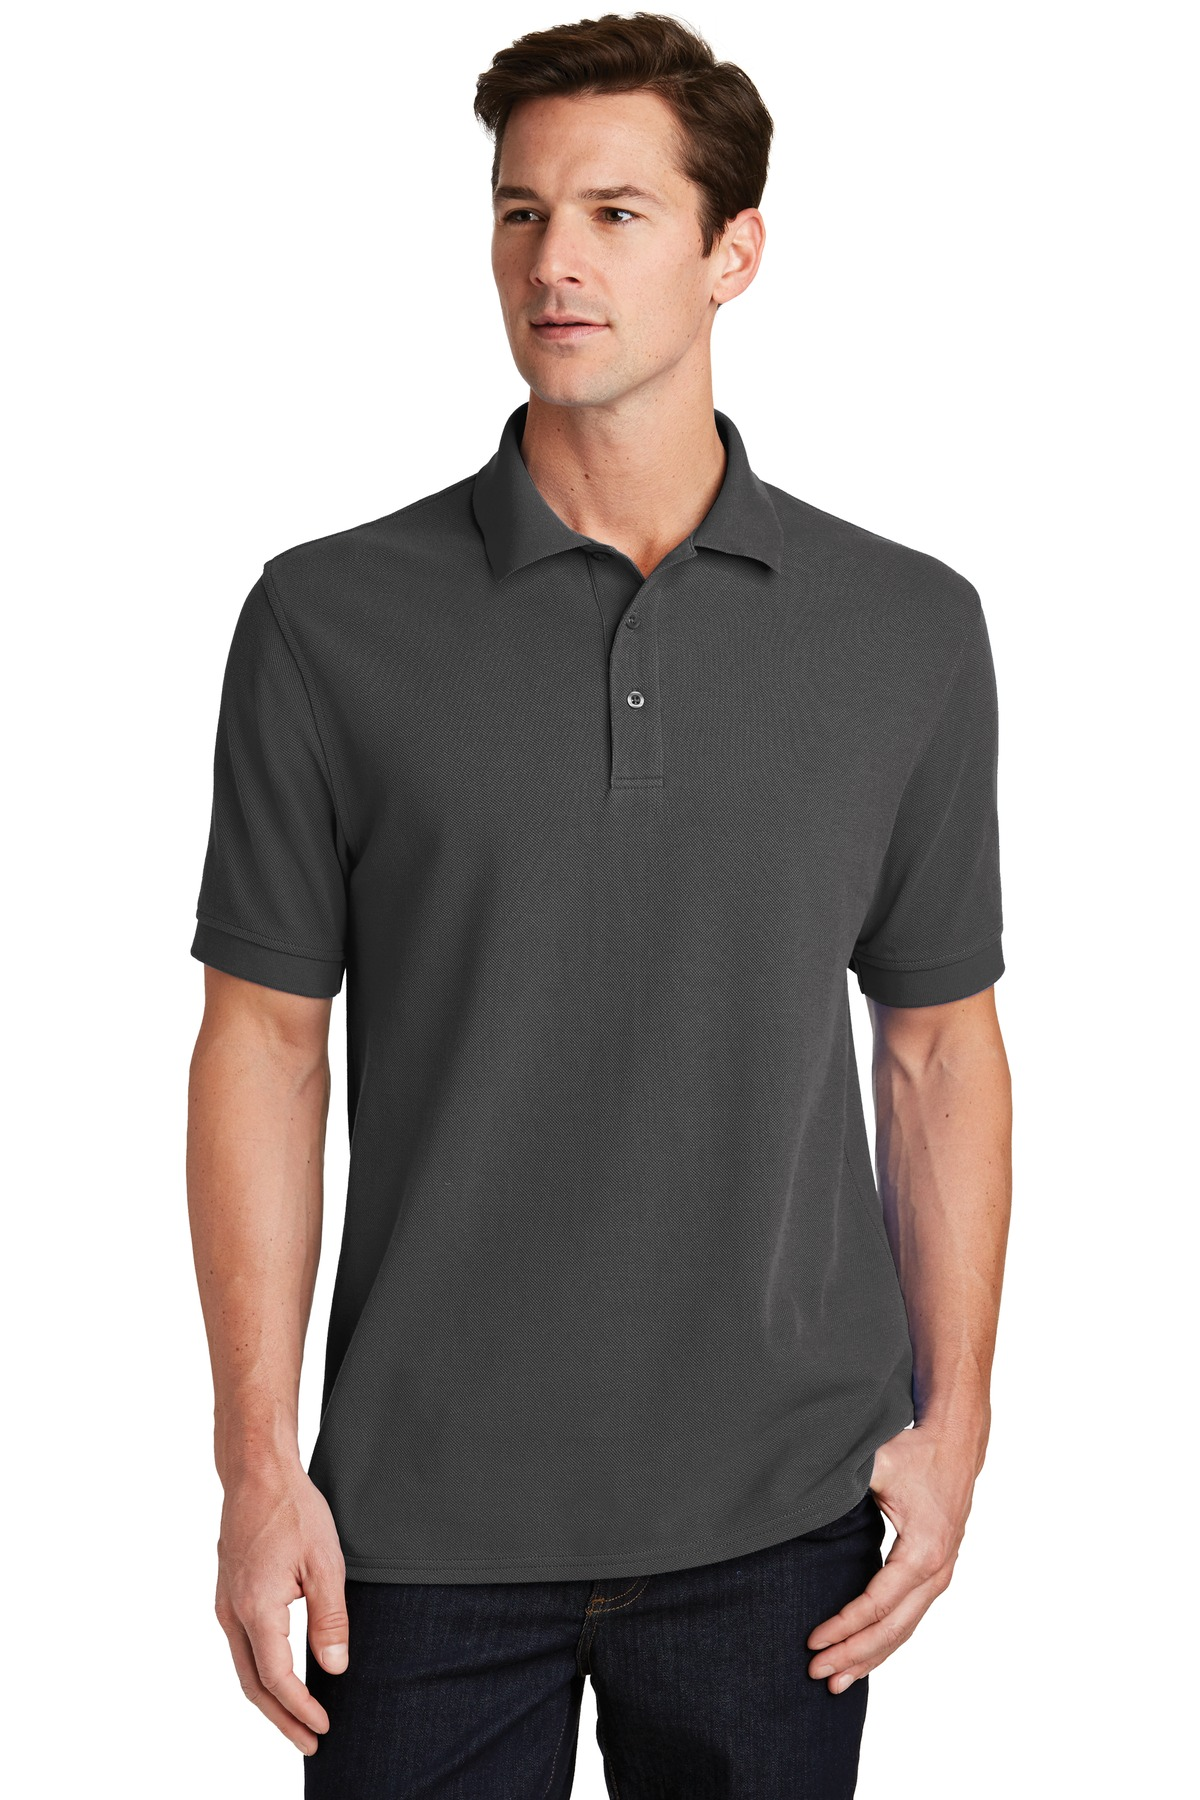 Port & Company ®  Combed Ring Spun Pique Polo. KP1500 - Charcoal